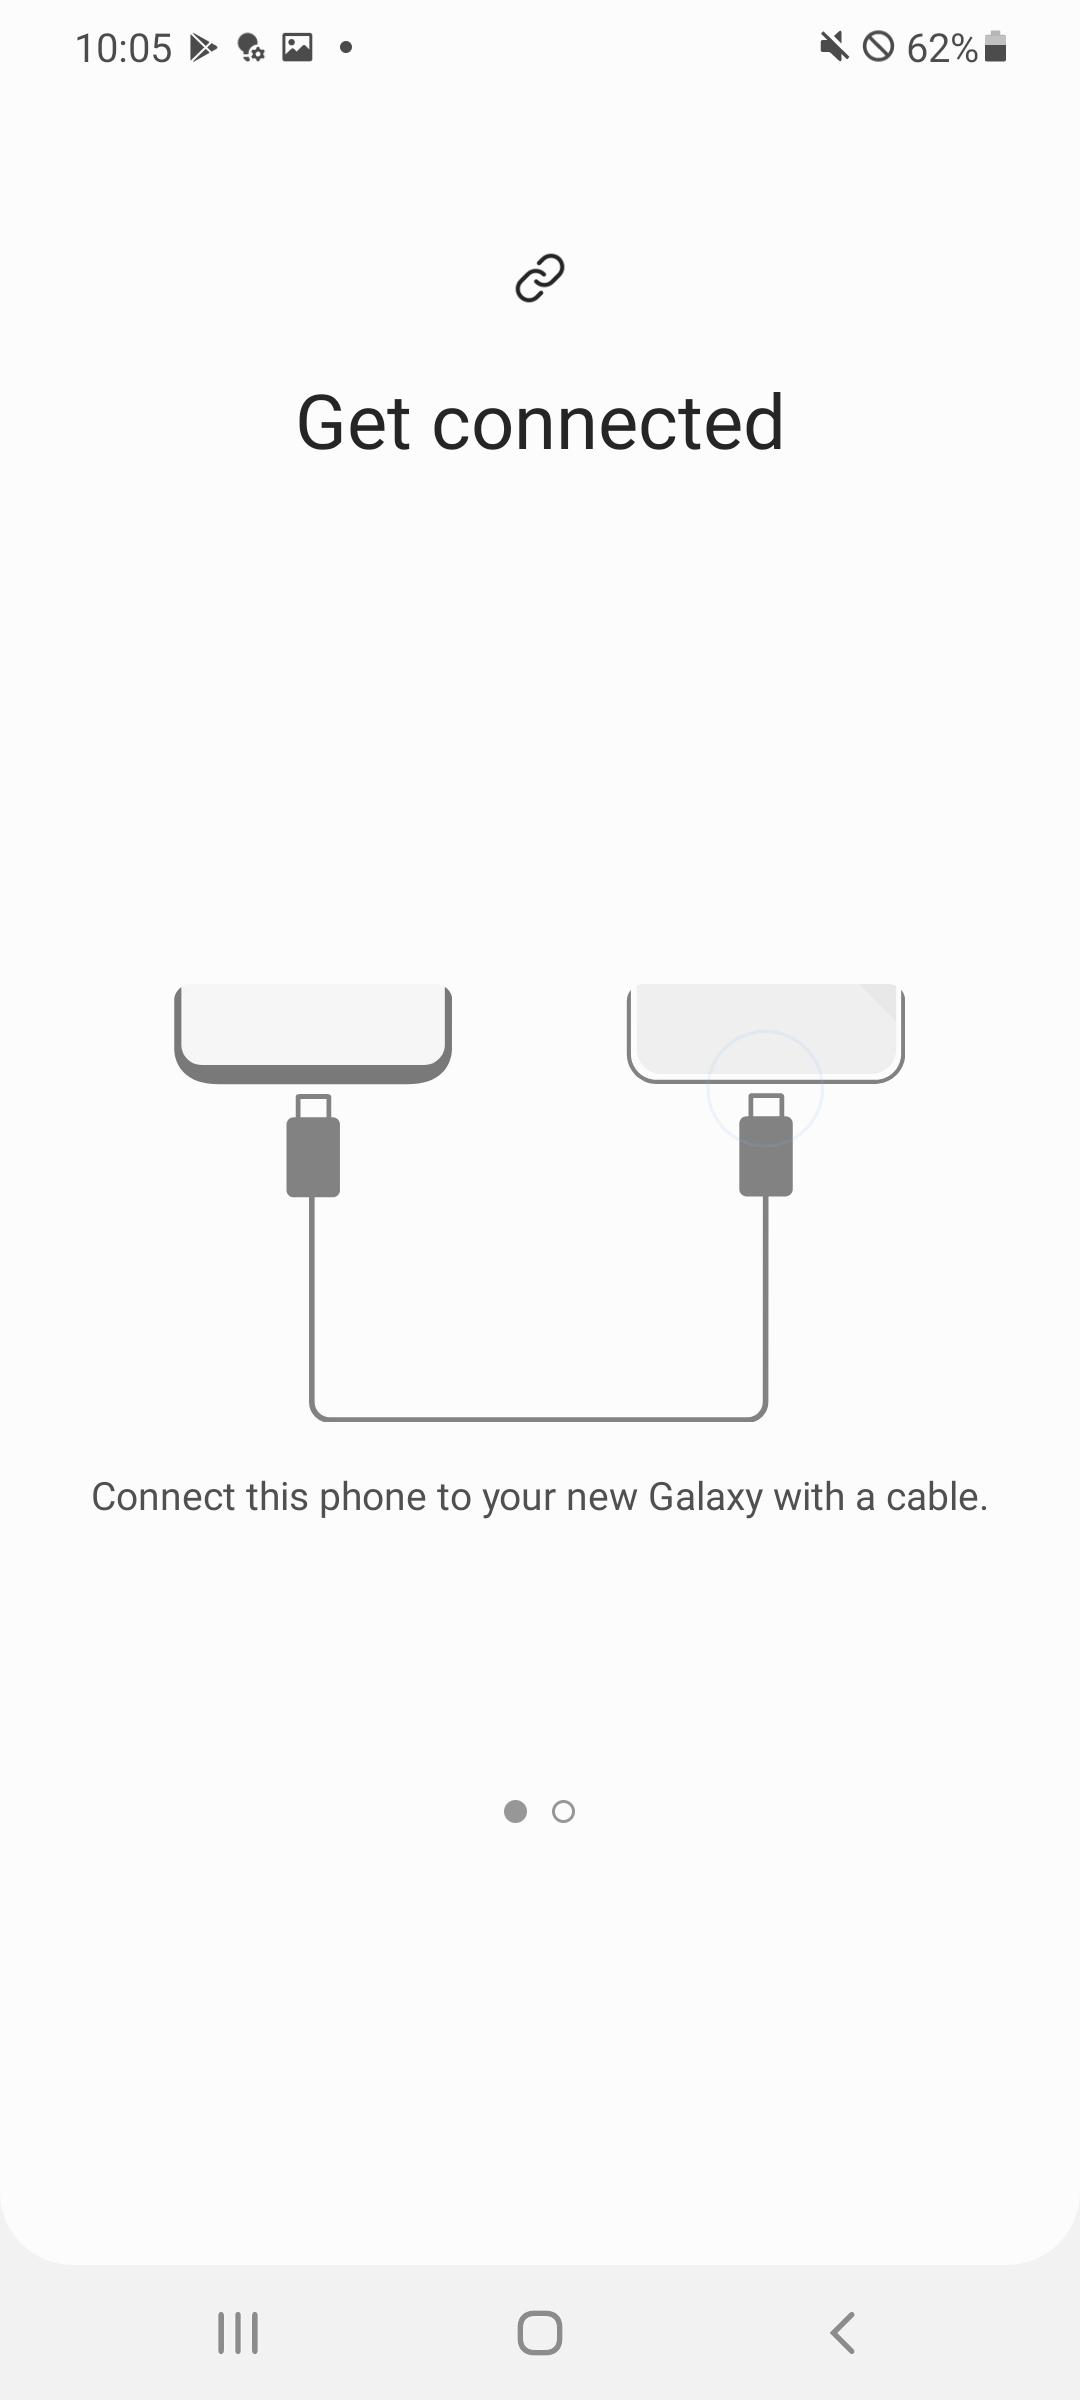 Samsung Smart Switch Mobile poster